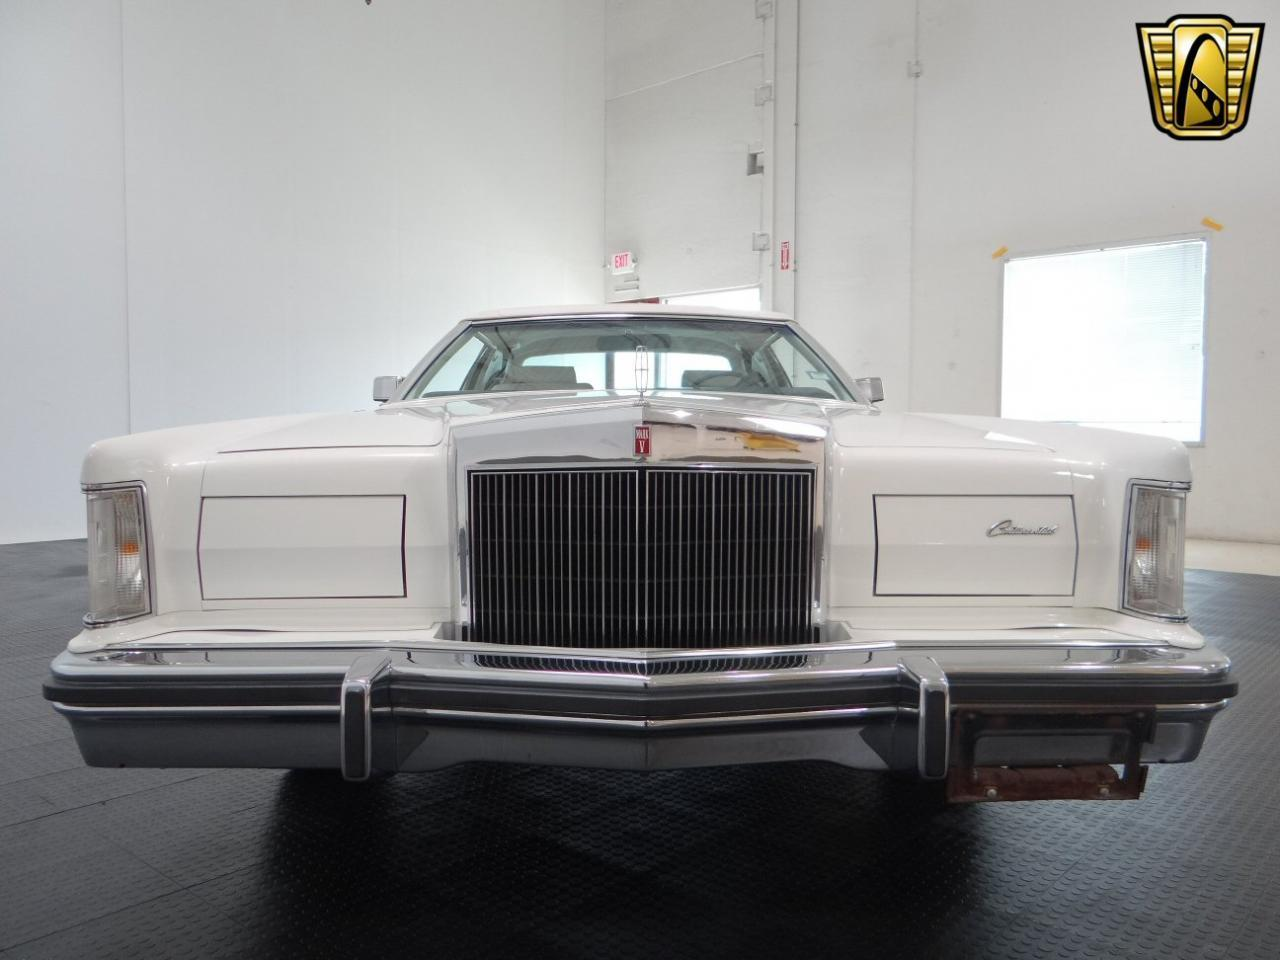 Large Picture of '78 Lincoln Continental located in Illinois - $9,595.00 Offered by Gateway Classic Cars - Chicago - KEVR